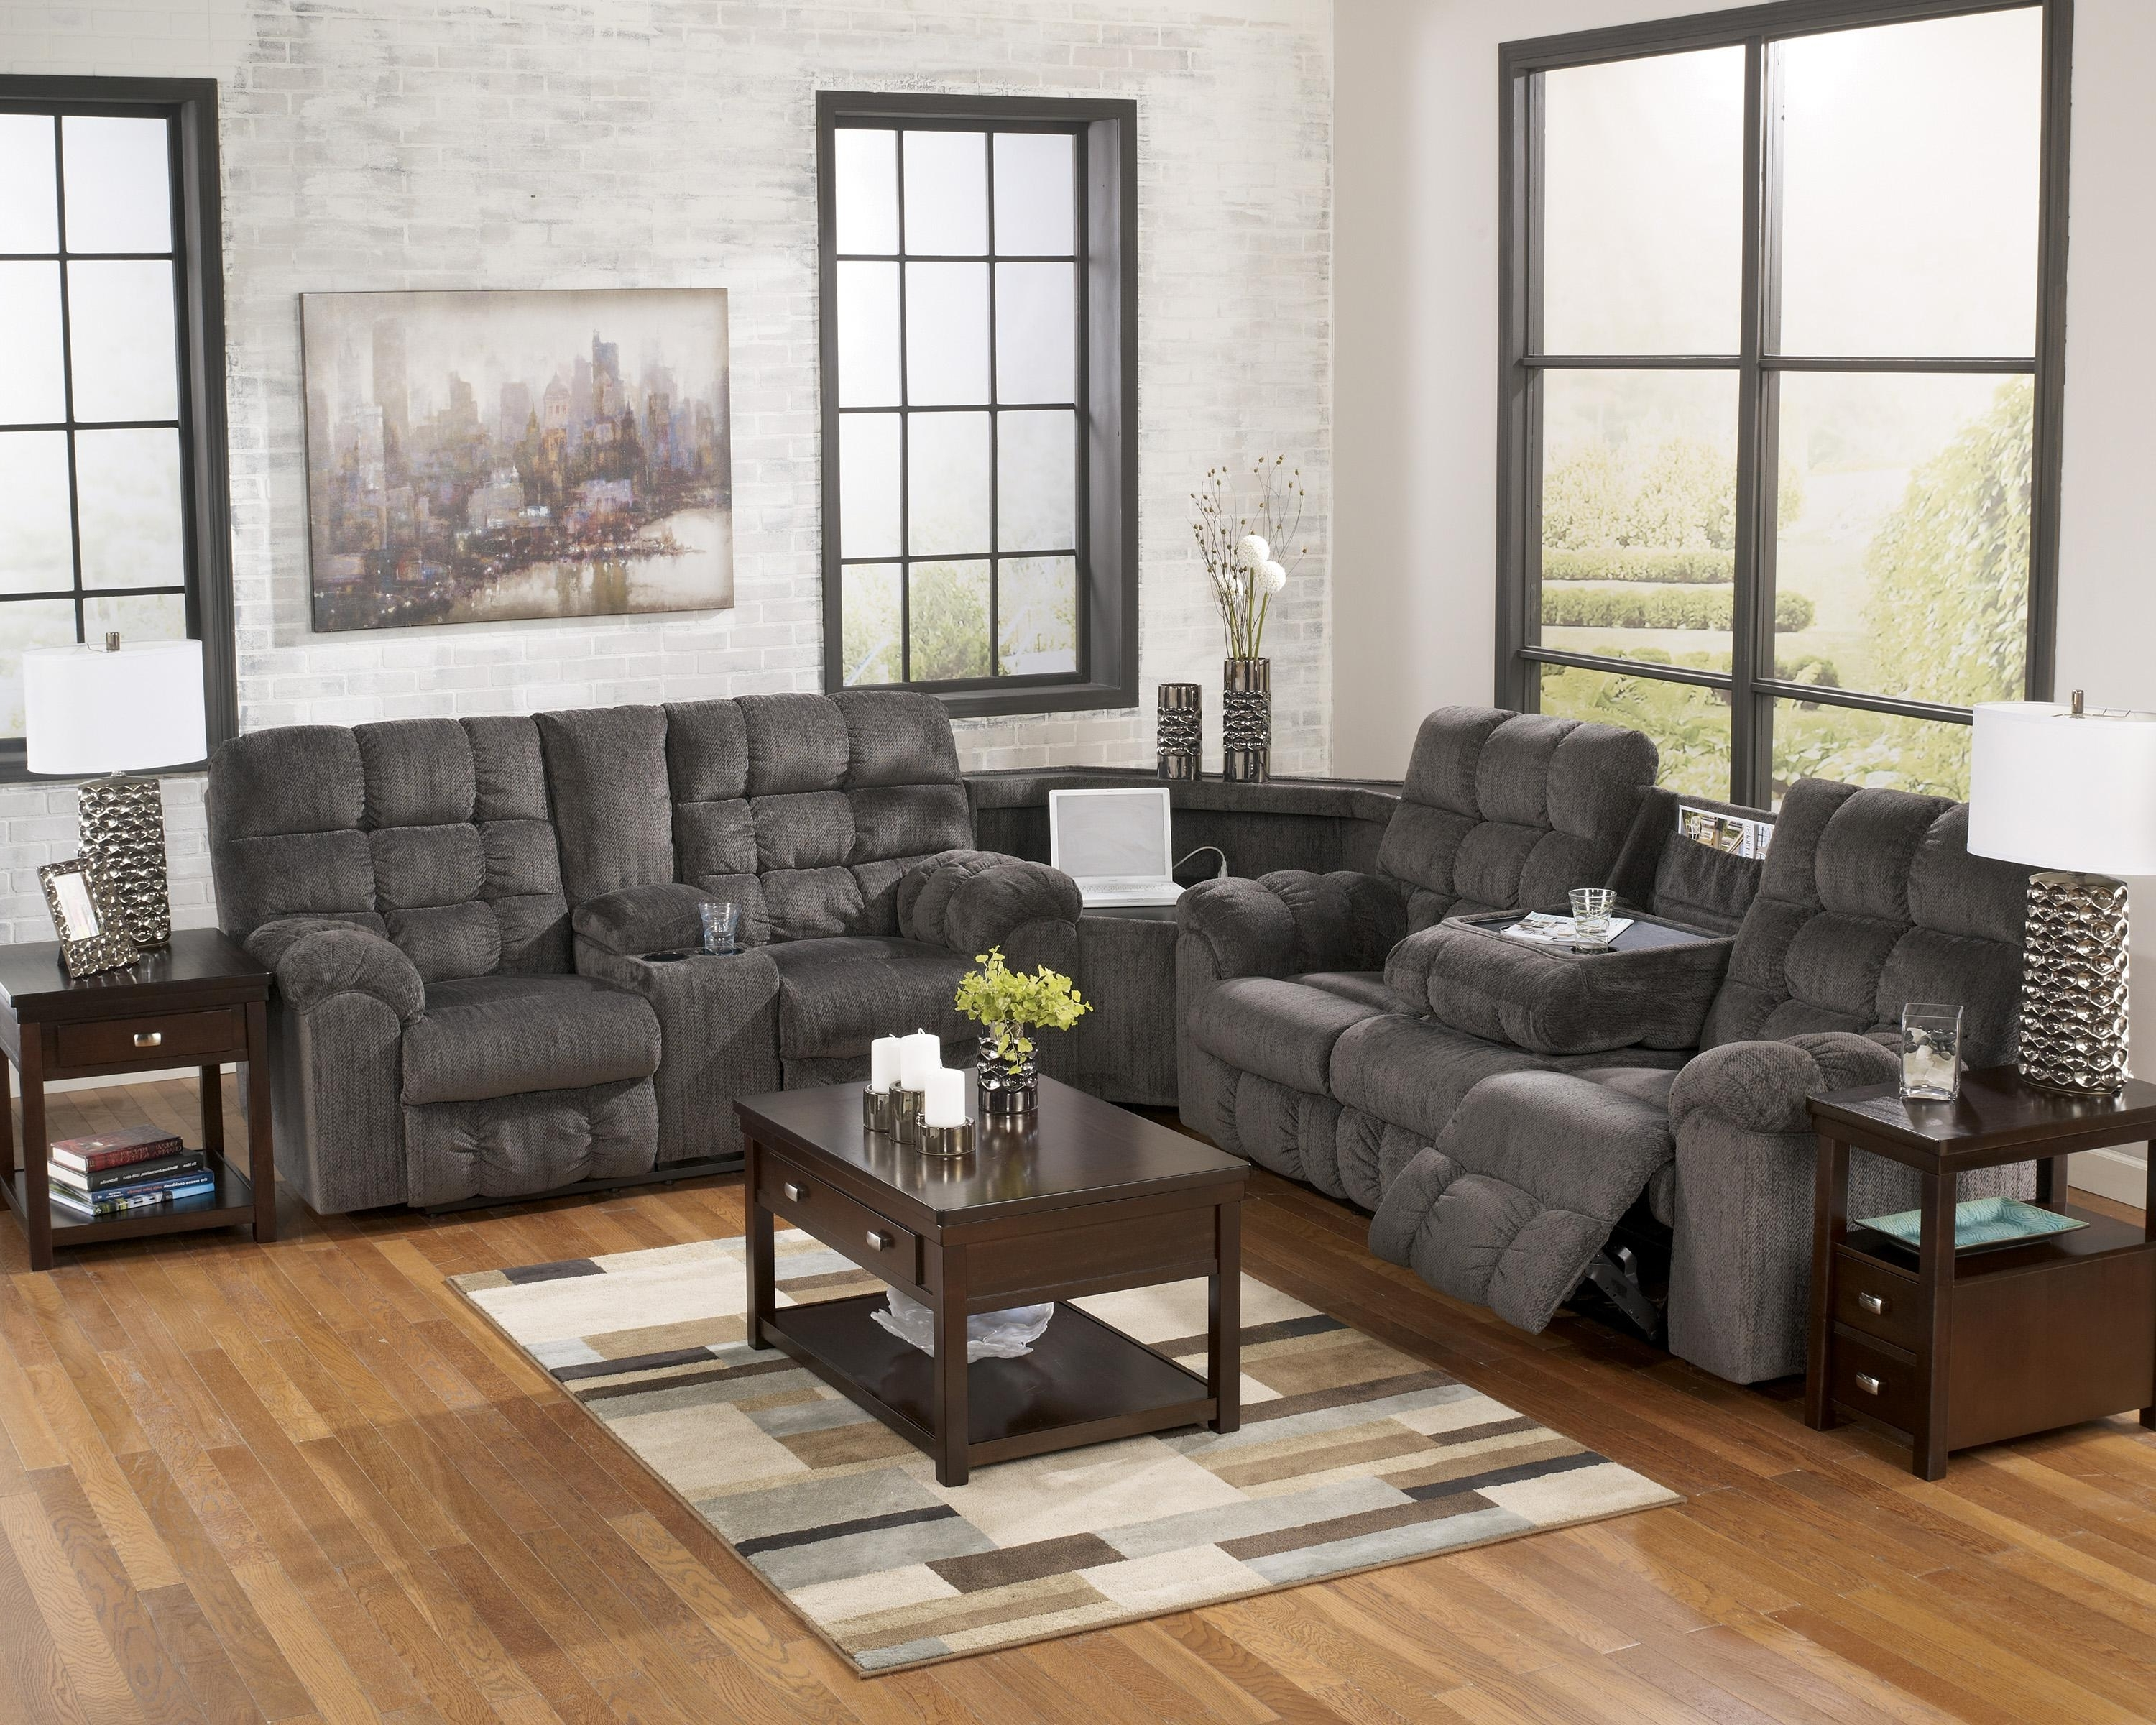 Most Recently Released Reclining Sectional Sofa With Right Side Loveseat, Cup Holders And Pertaining To Sectional Sofas With Cup Holders (View 16 of 20)